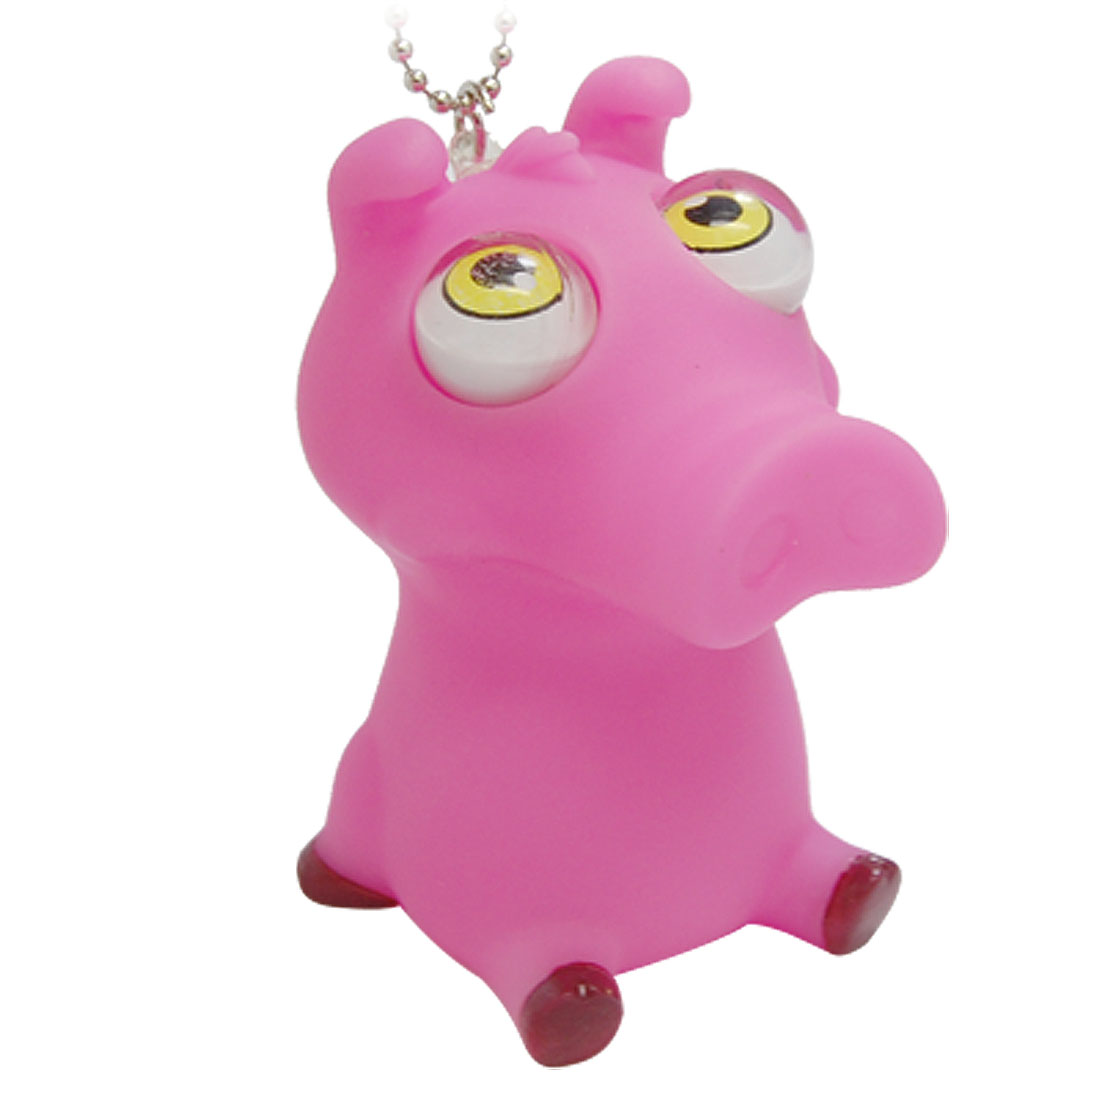 Pink Stress Reliever Pig Shaped Squeeze Toy Gift